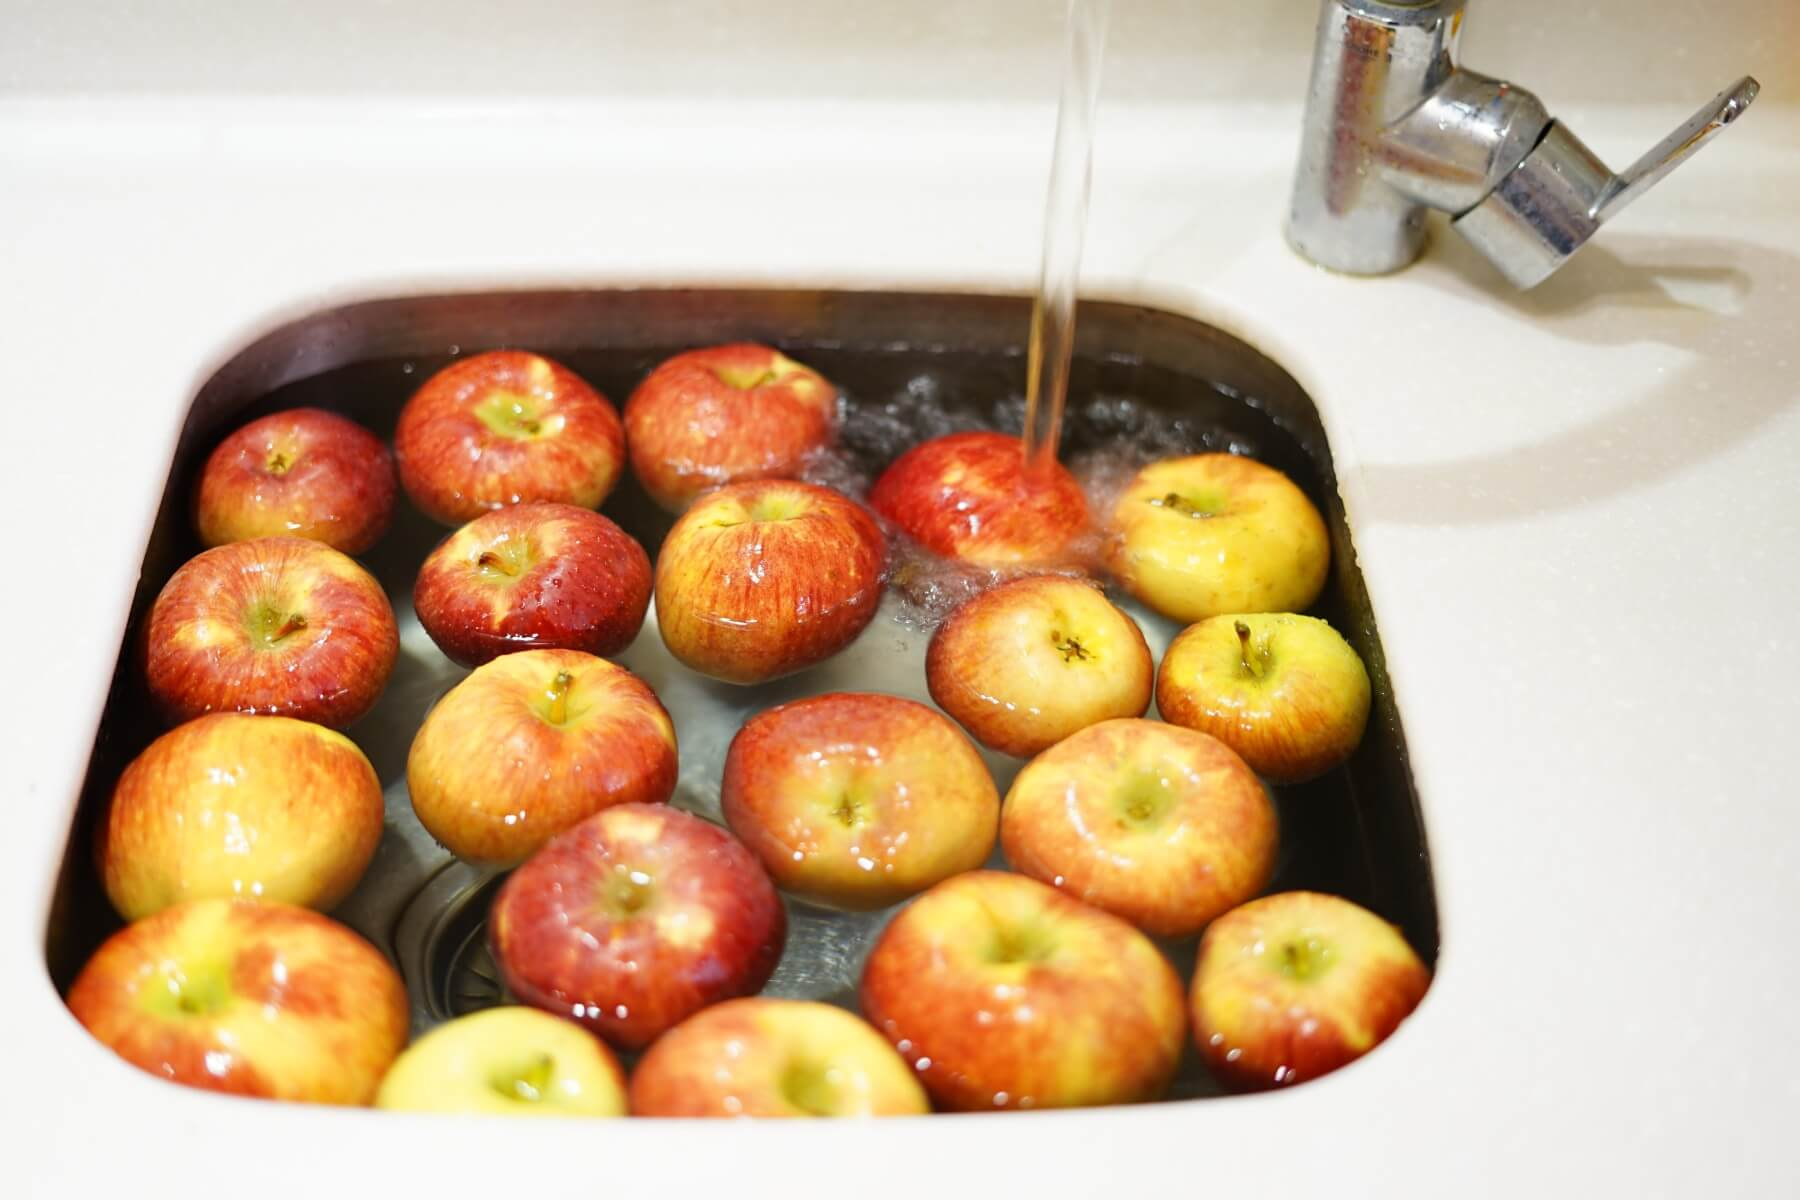 What Not To Be Dumped Down The Kitchen Sink